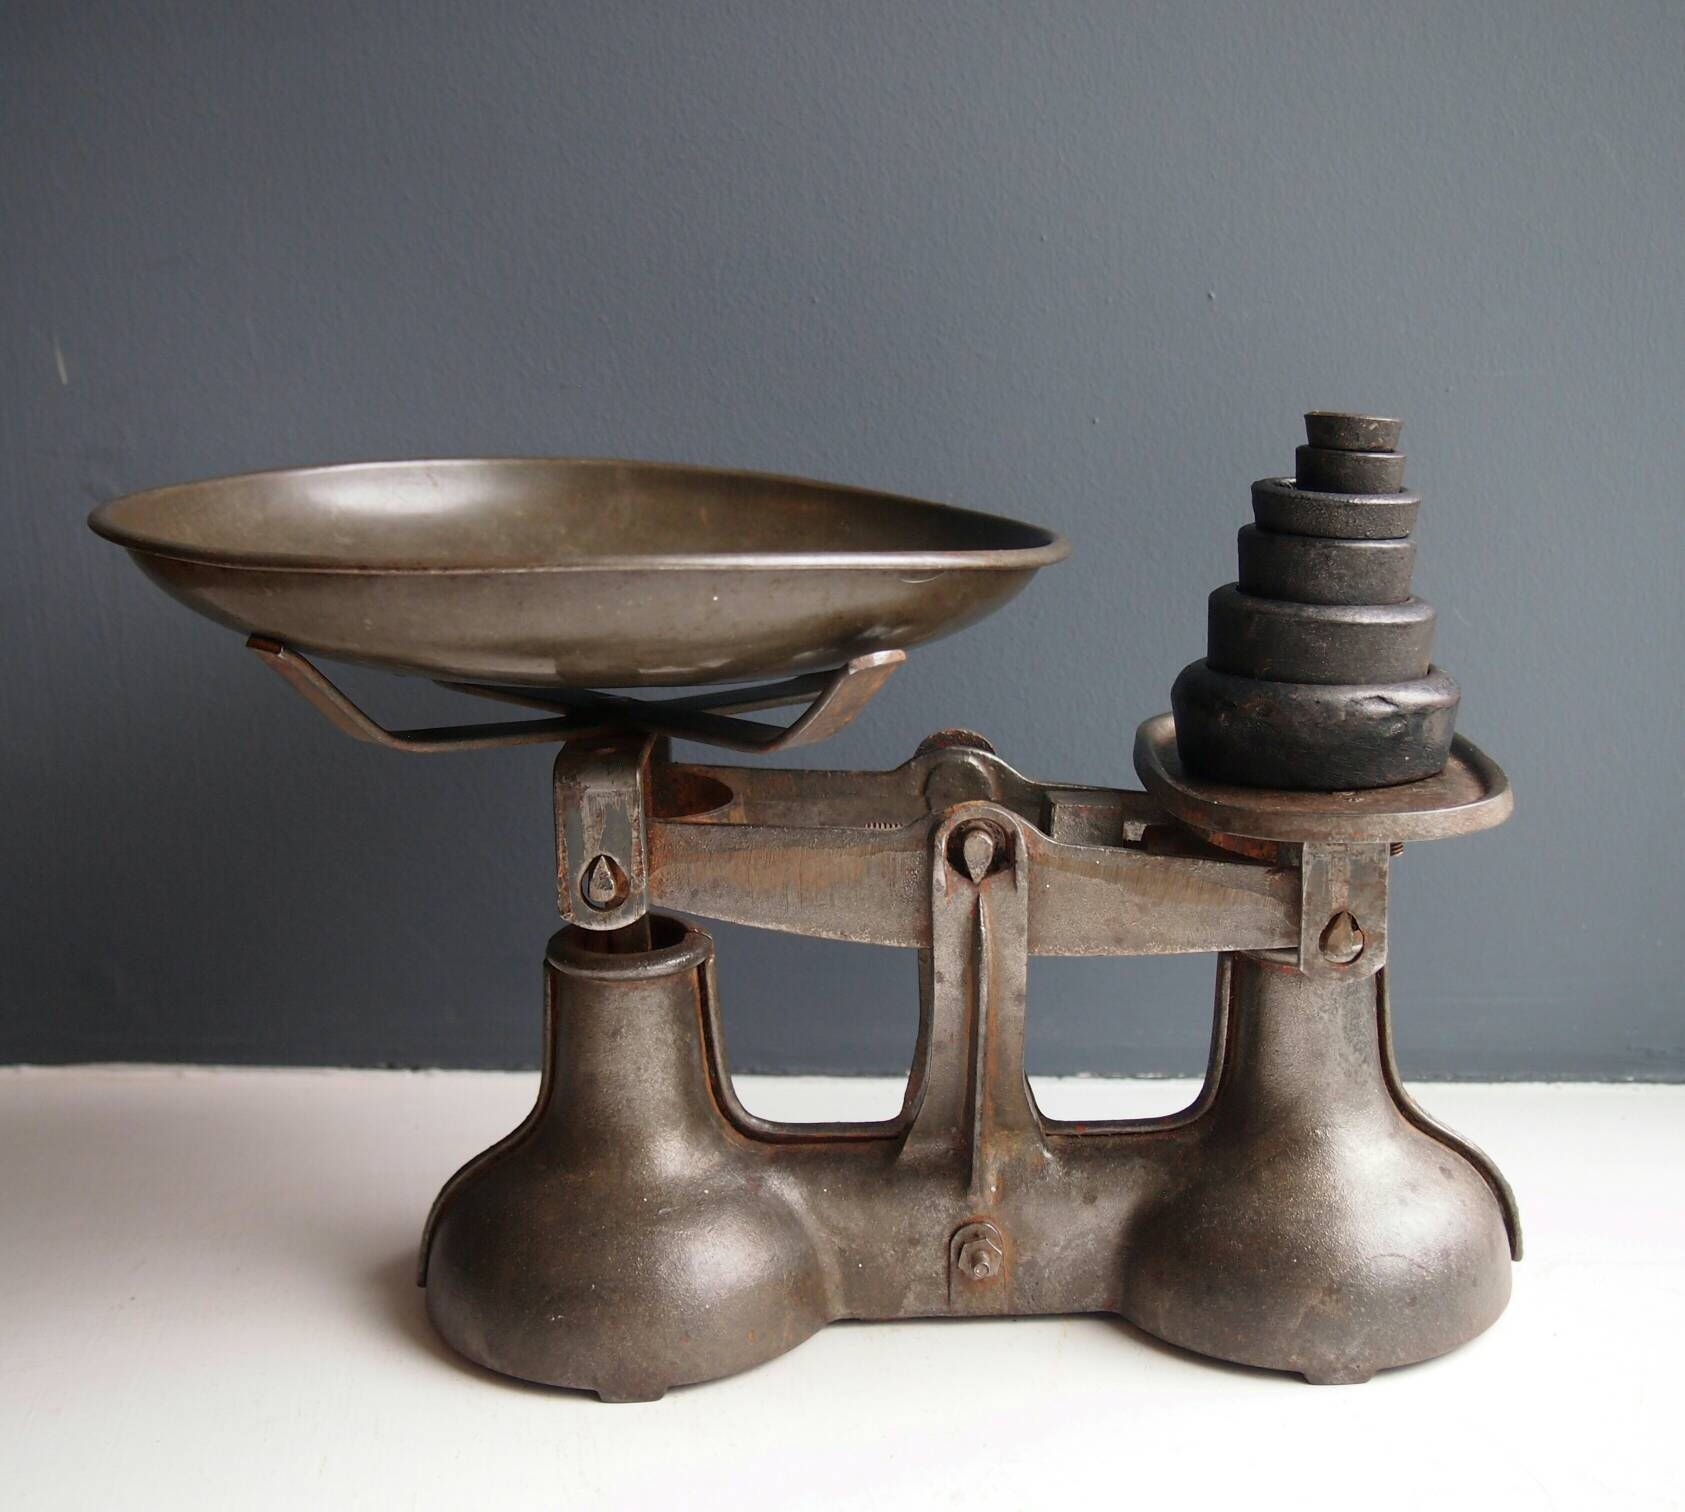 Vintage Cast Iron Kitchen Scales Weighing Scale And Imperial Weights Vintage Balance Kitchenalia Bakeware Cwb 7oz Antique Scales